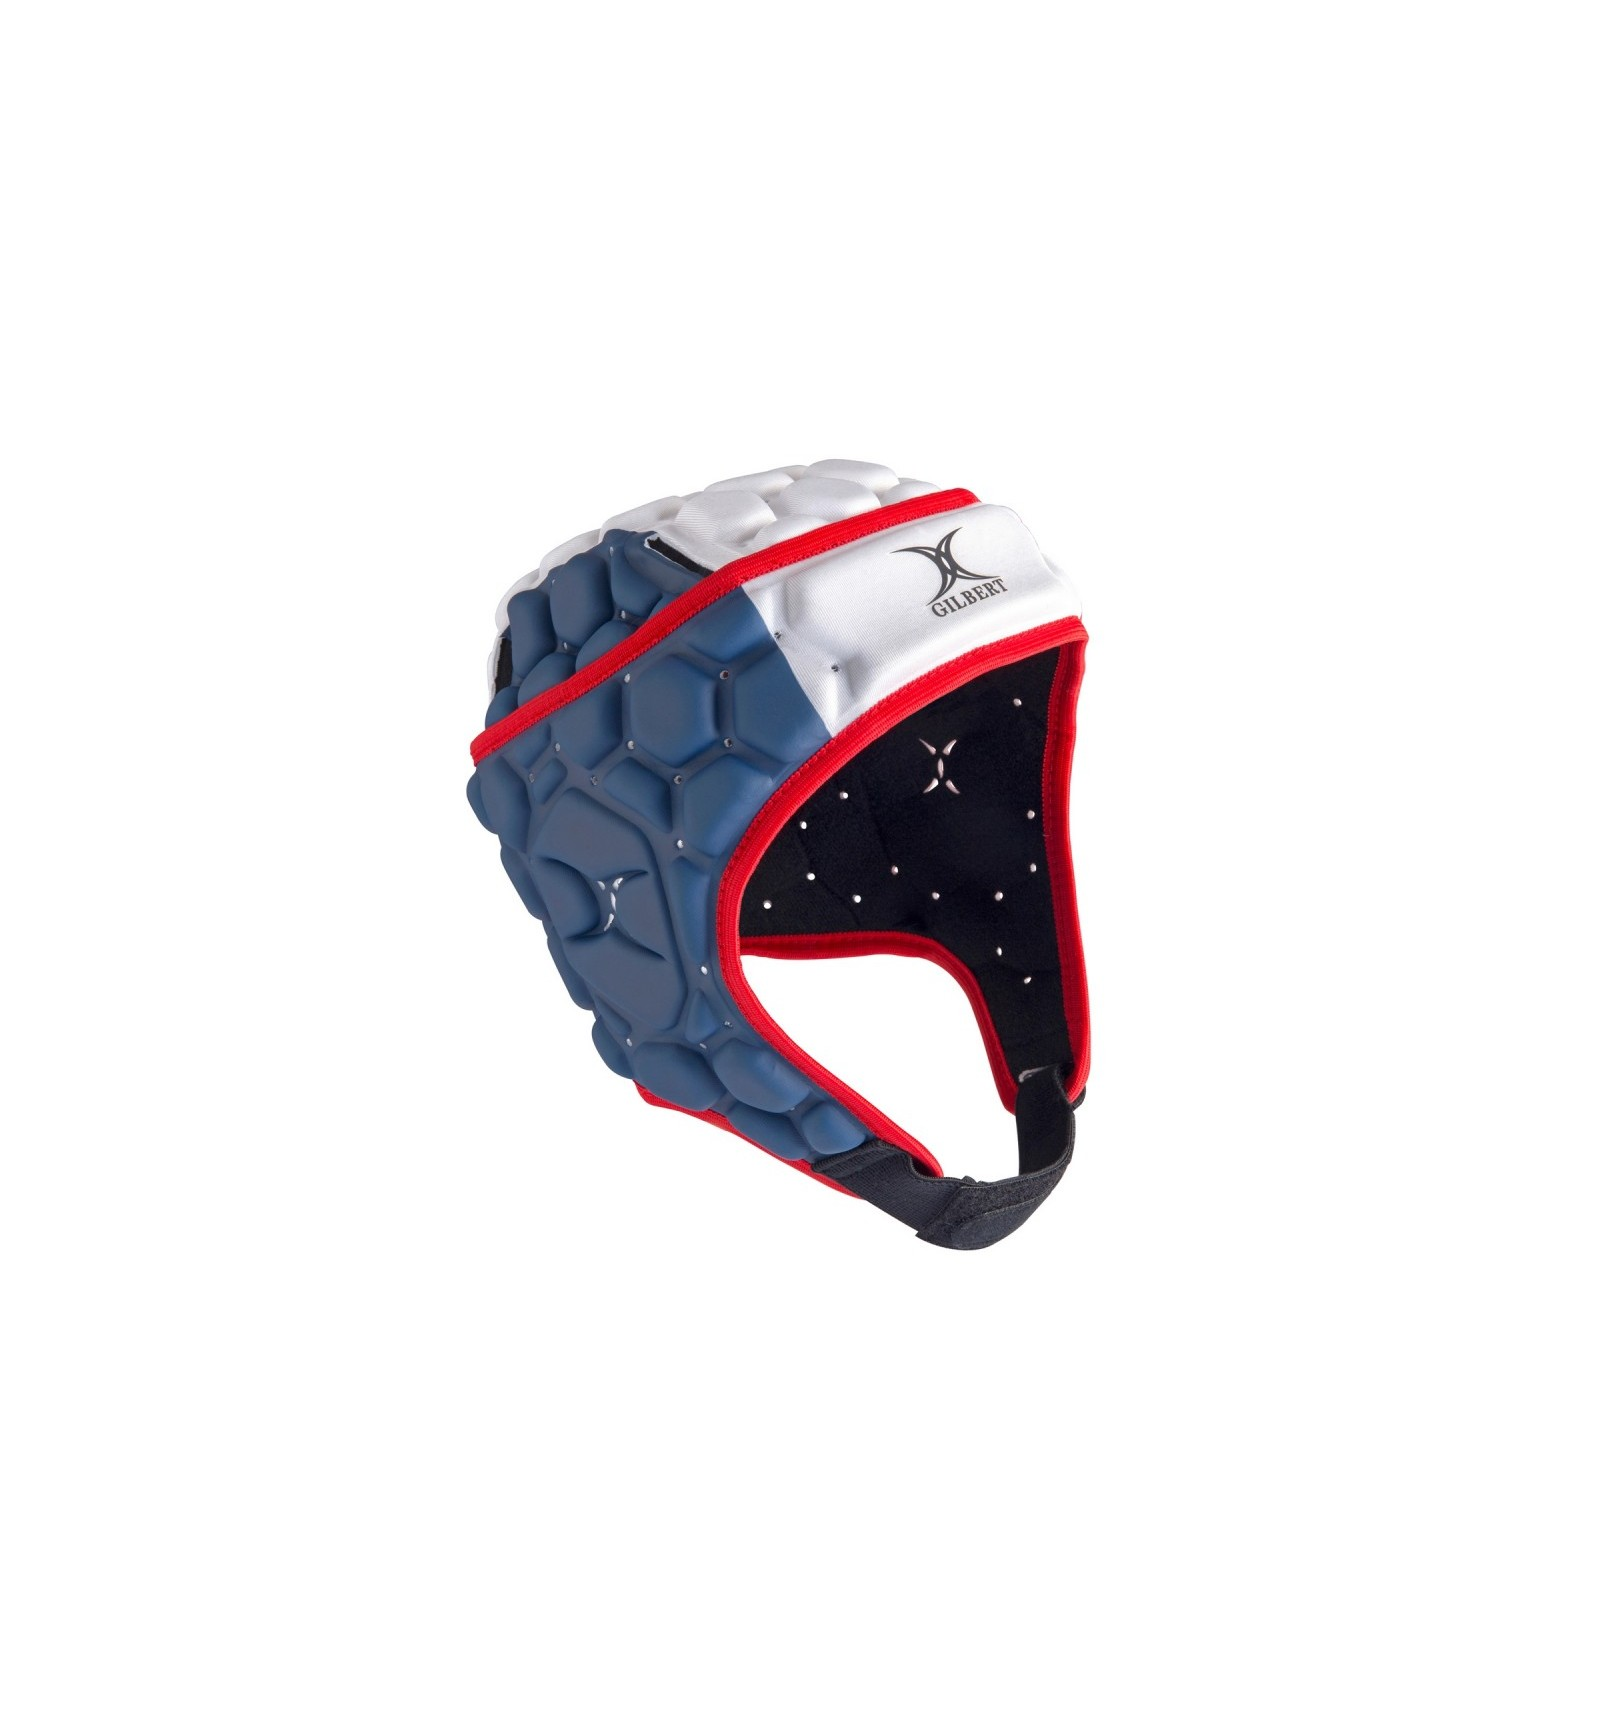 Casque rugby France Falcon 200 Gilbert bleu blanc rouge